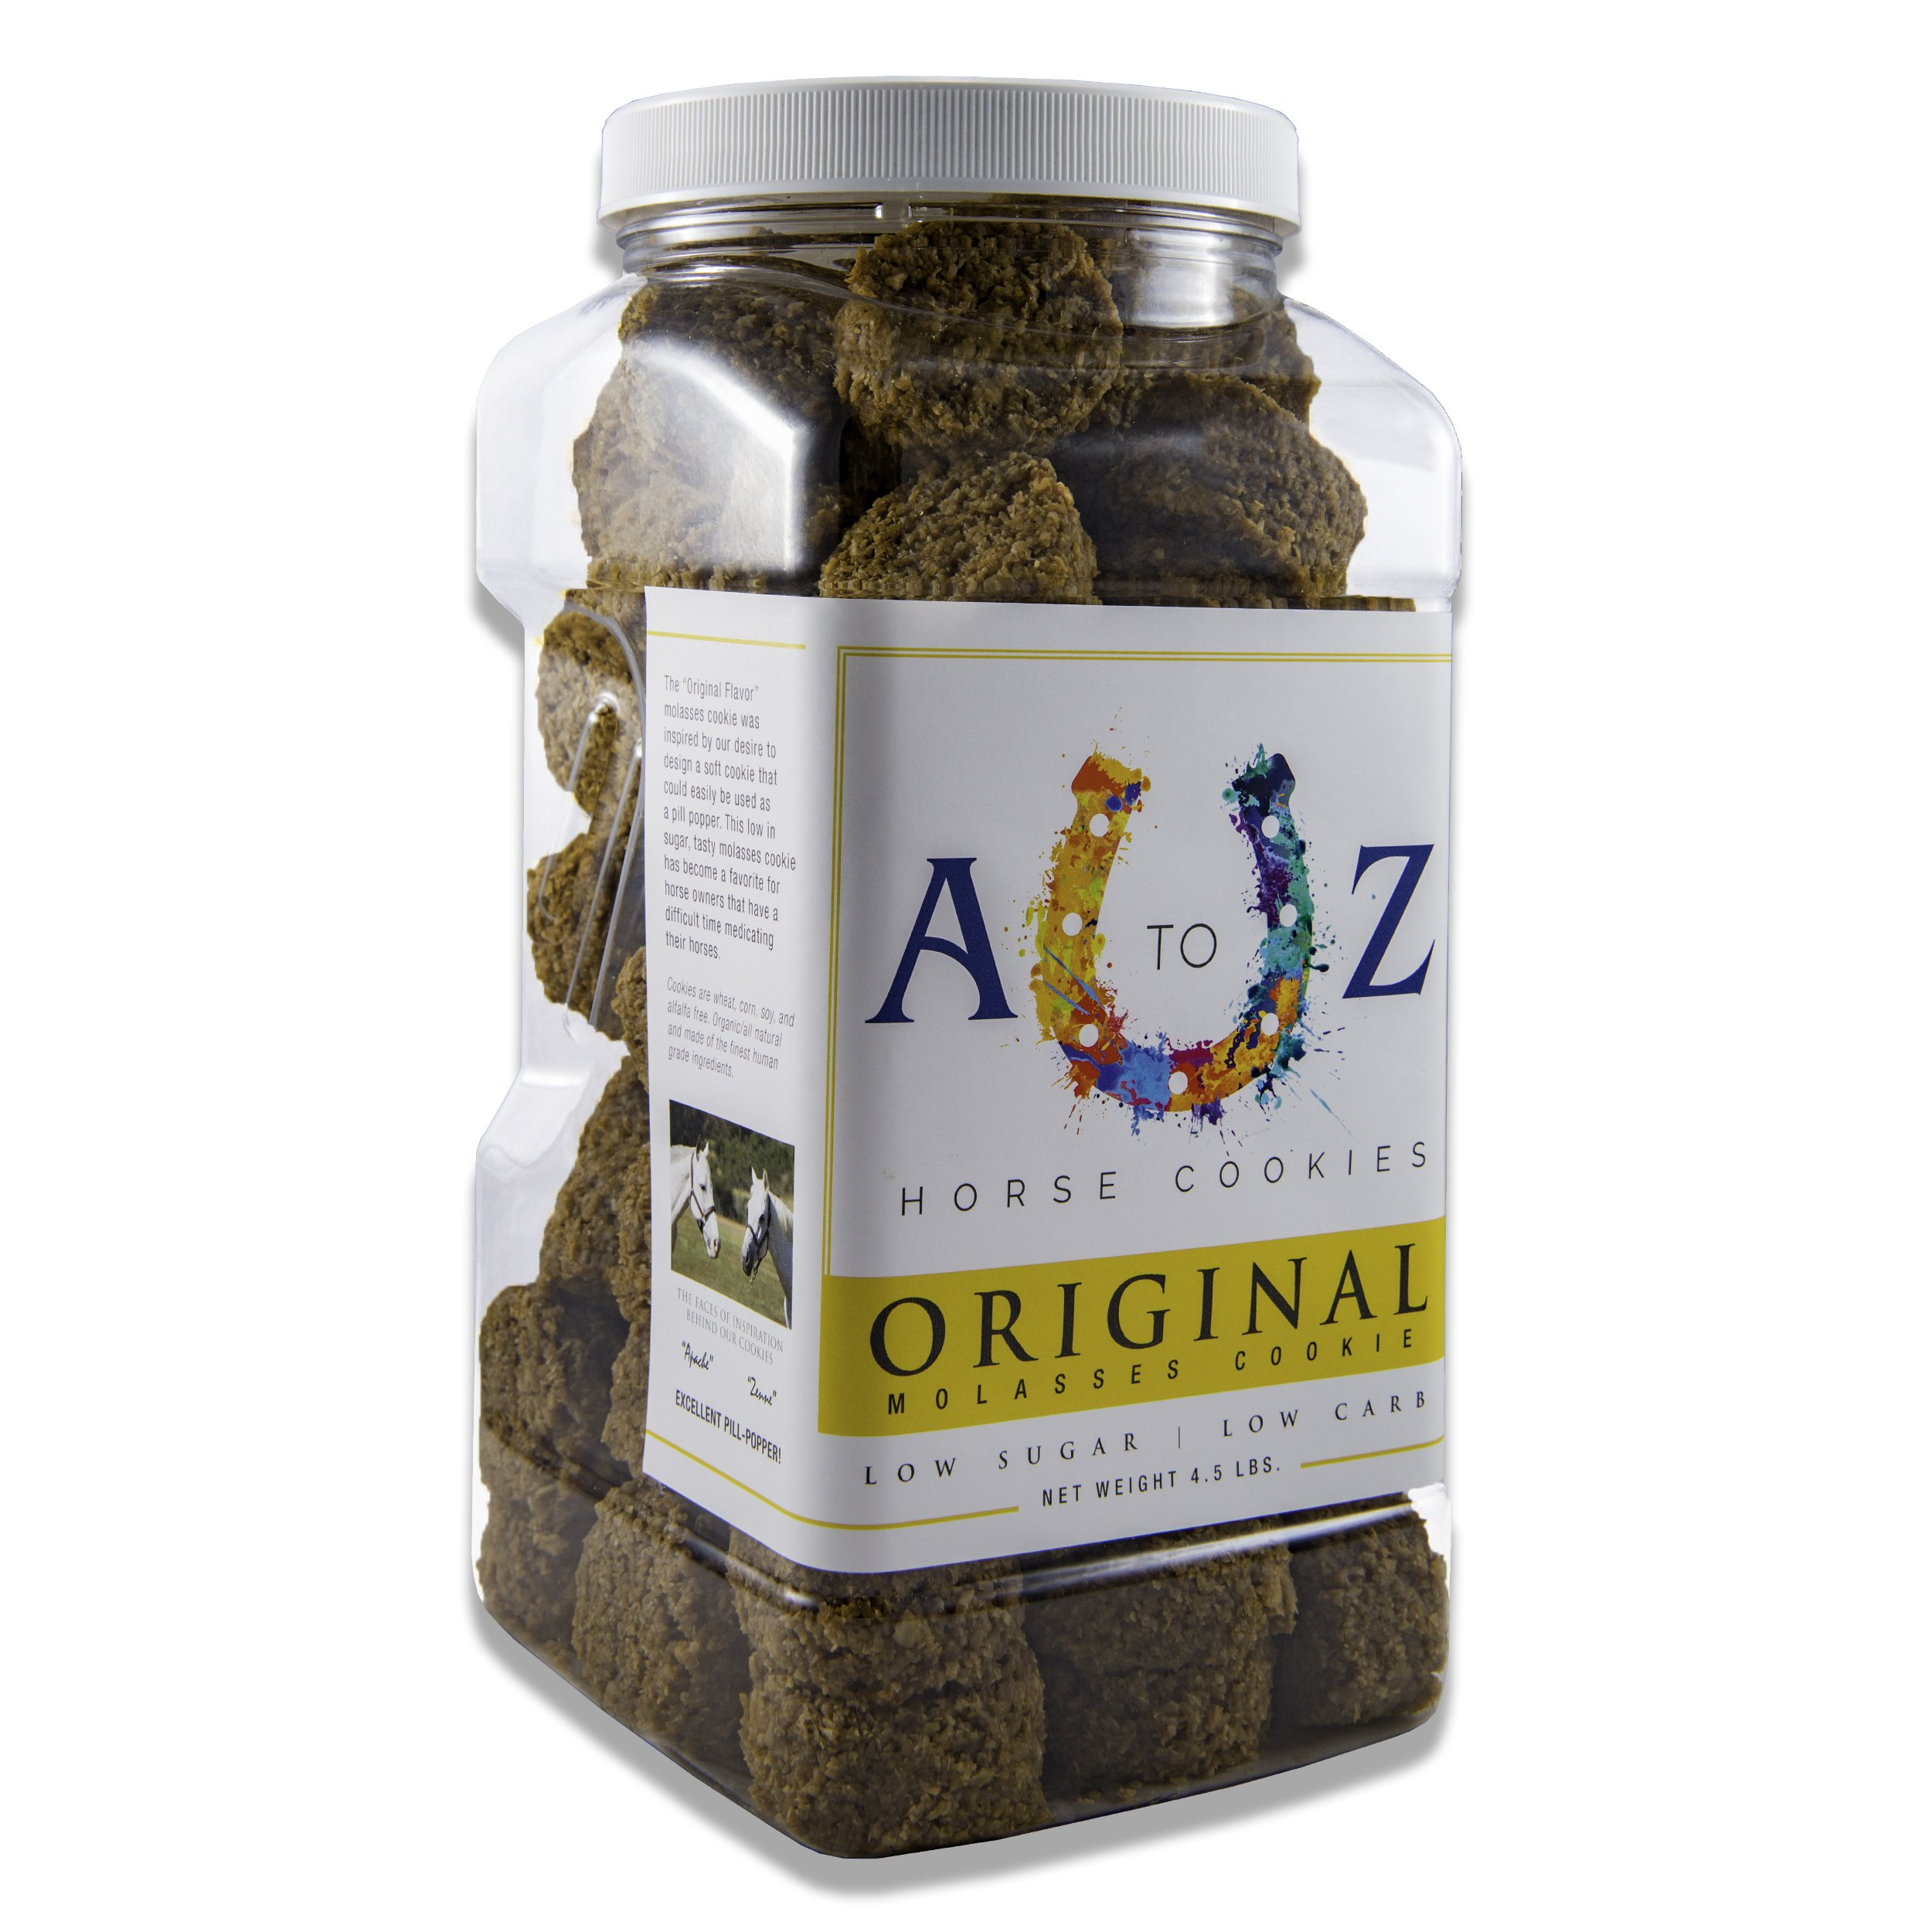 Horse Cookie Treat: Original Flavor by A - Z Horse Cookies, Low Carb Low Sugar Softer Treats, Organic, Great for All Horses and Excellent for Those with Metabolic Conditions, 4.5 lbs Jar by A to Z Horse Cookies